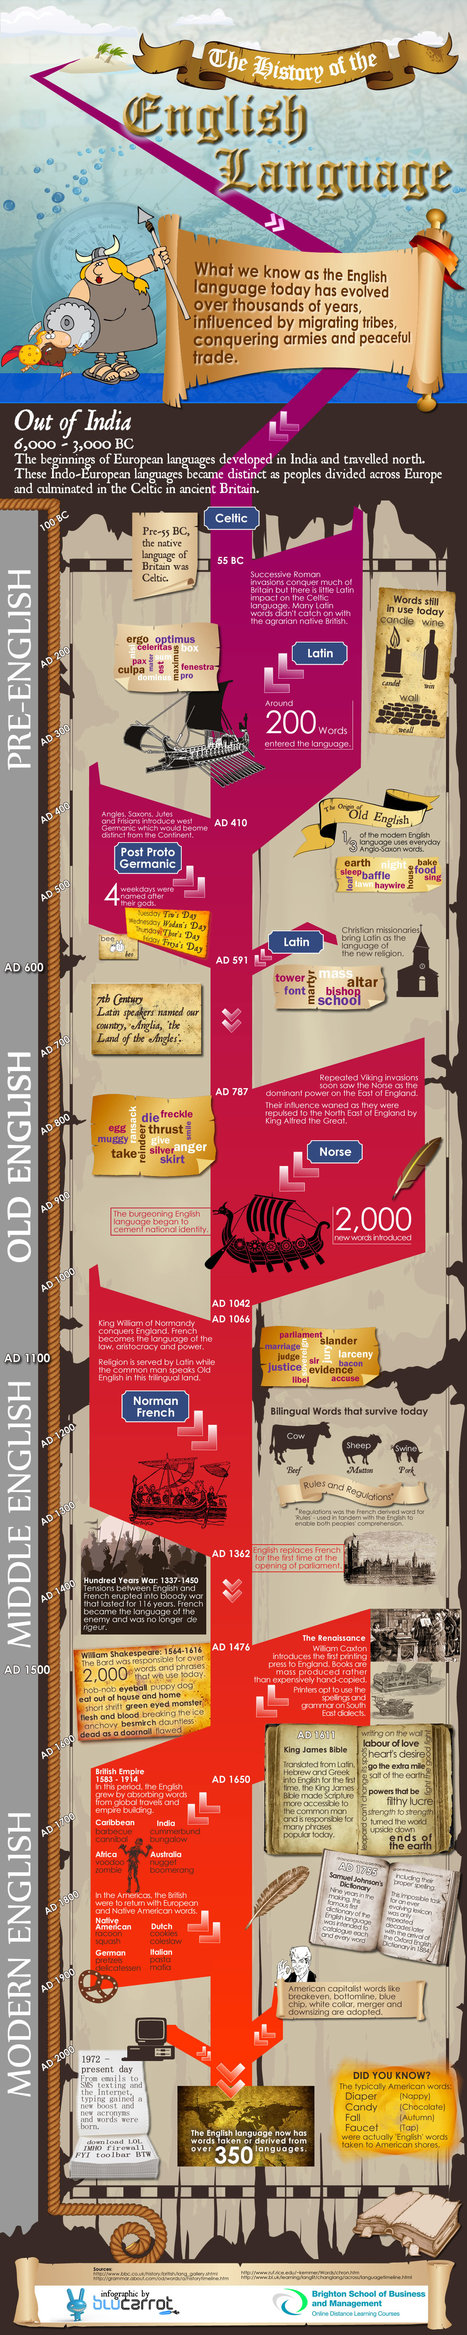 The History of the English Language: Infographic | Edumathingy | Scoop.it